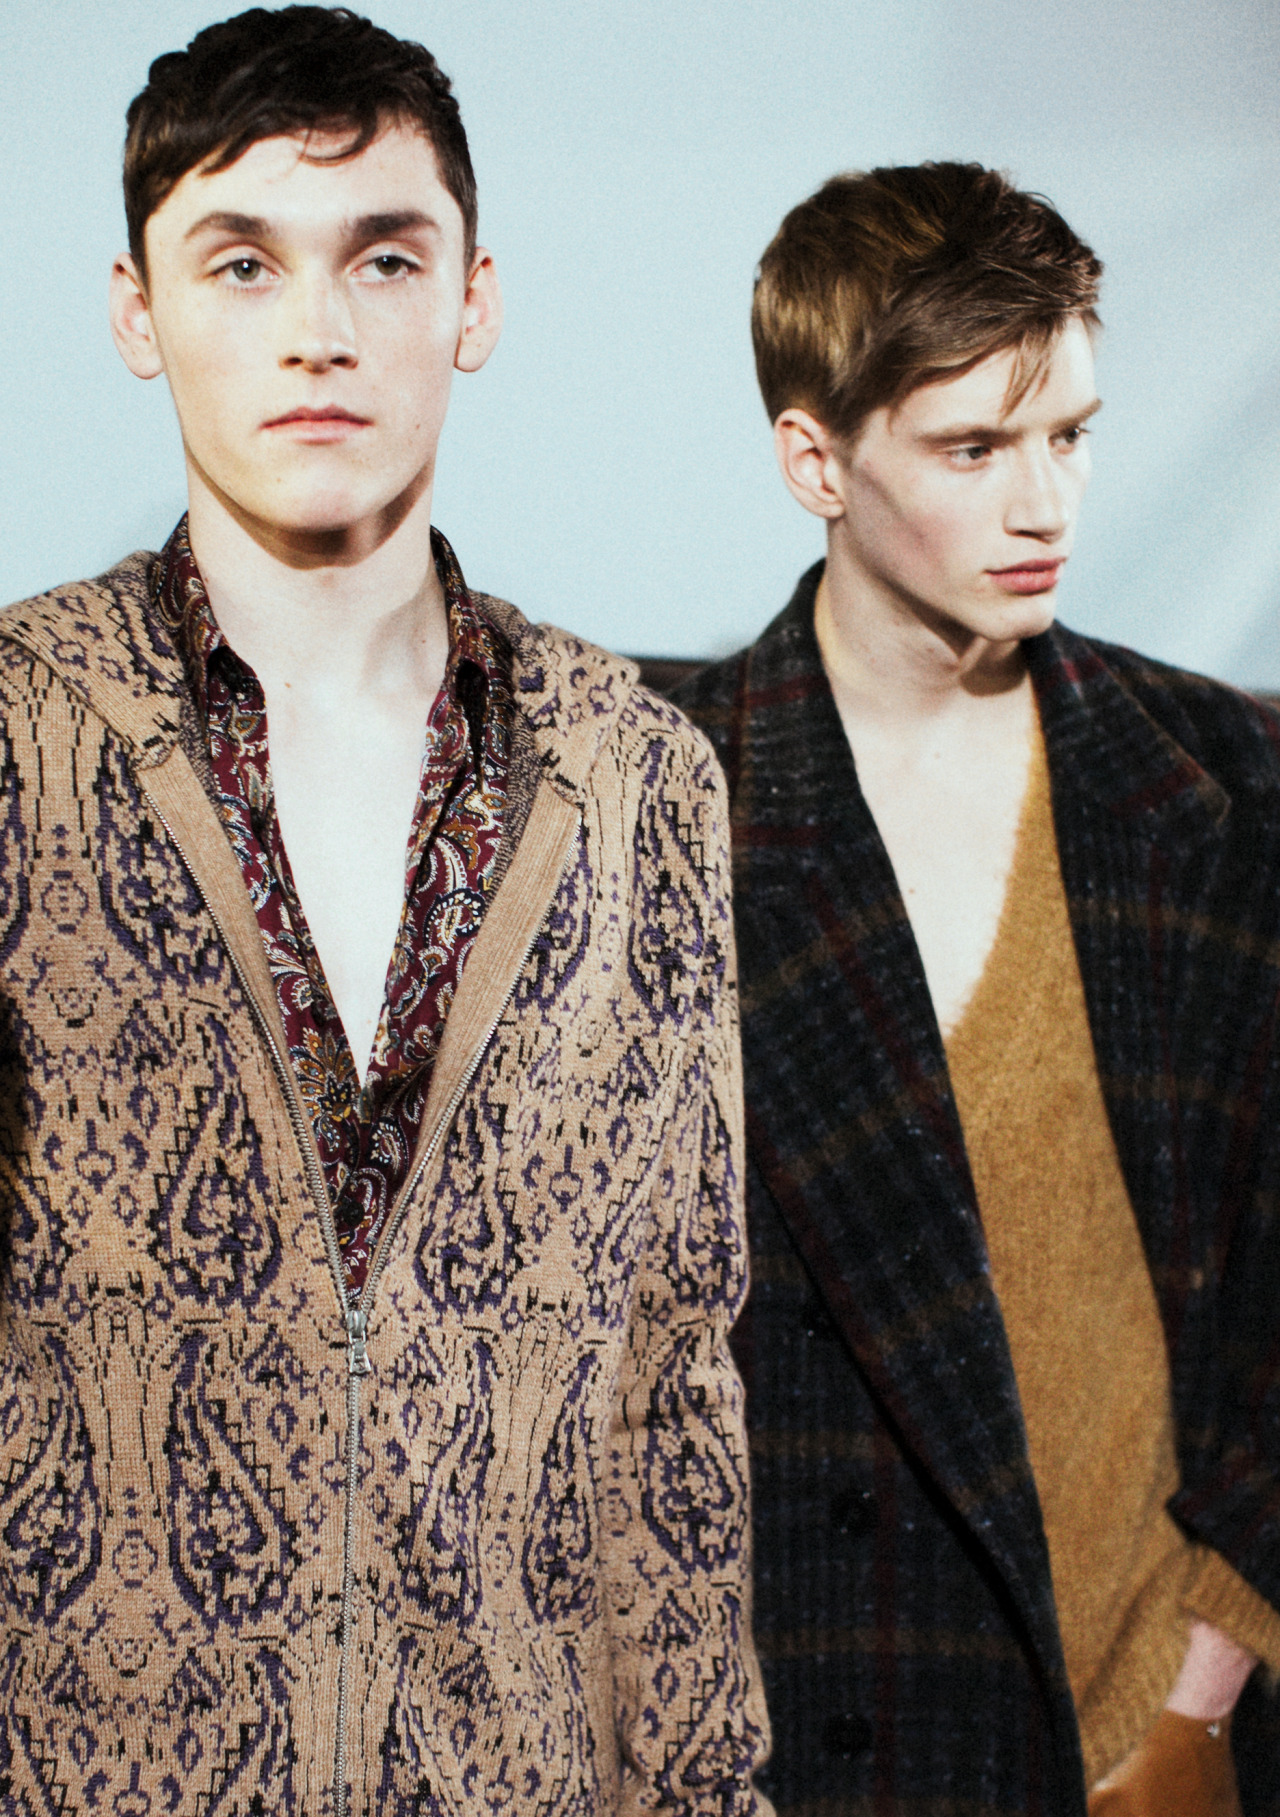 Anders Hayward & Justin Sterling Backstage at Dries van Noten AW13 by Lea Colombo